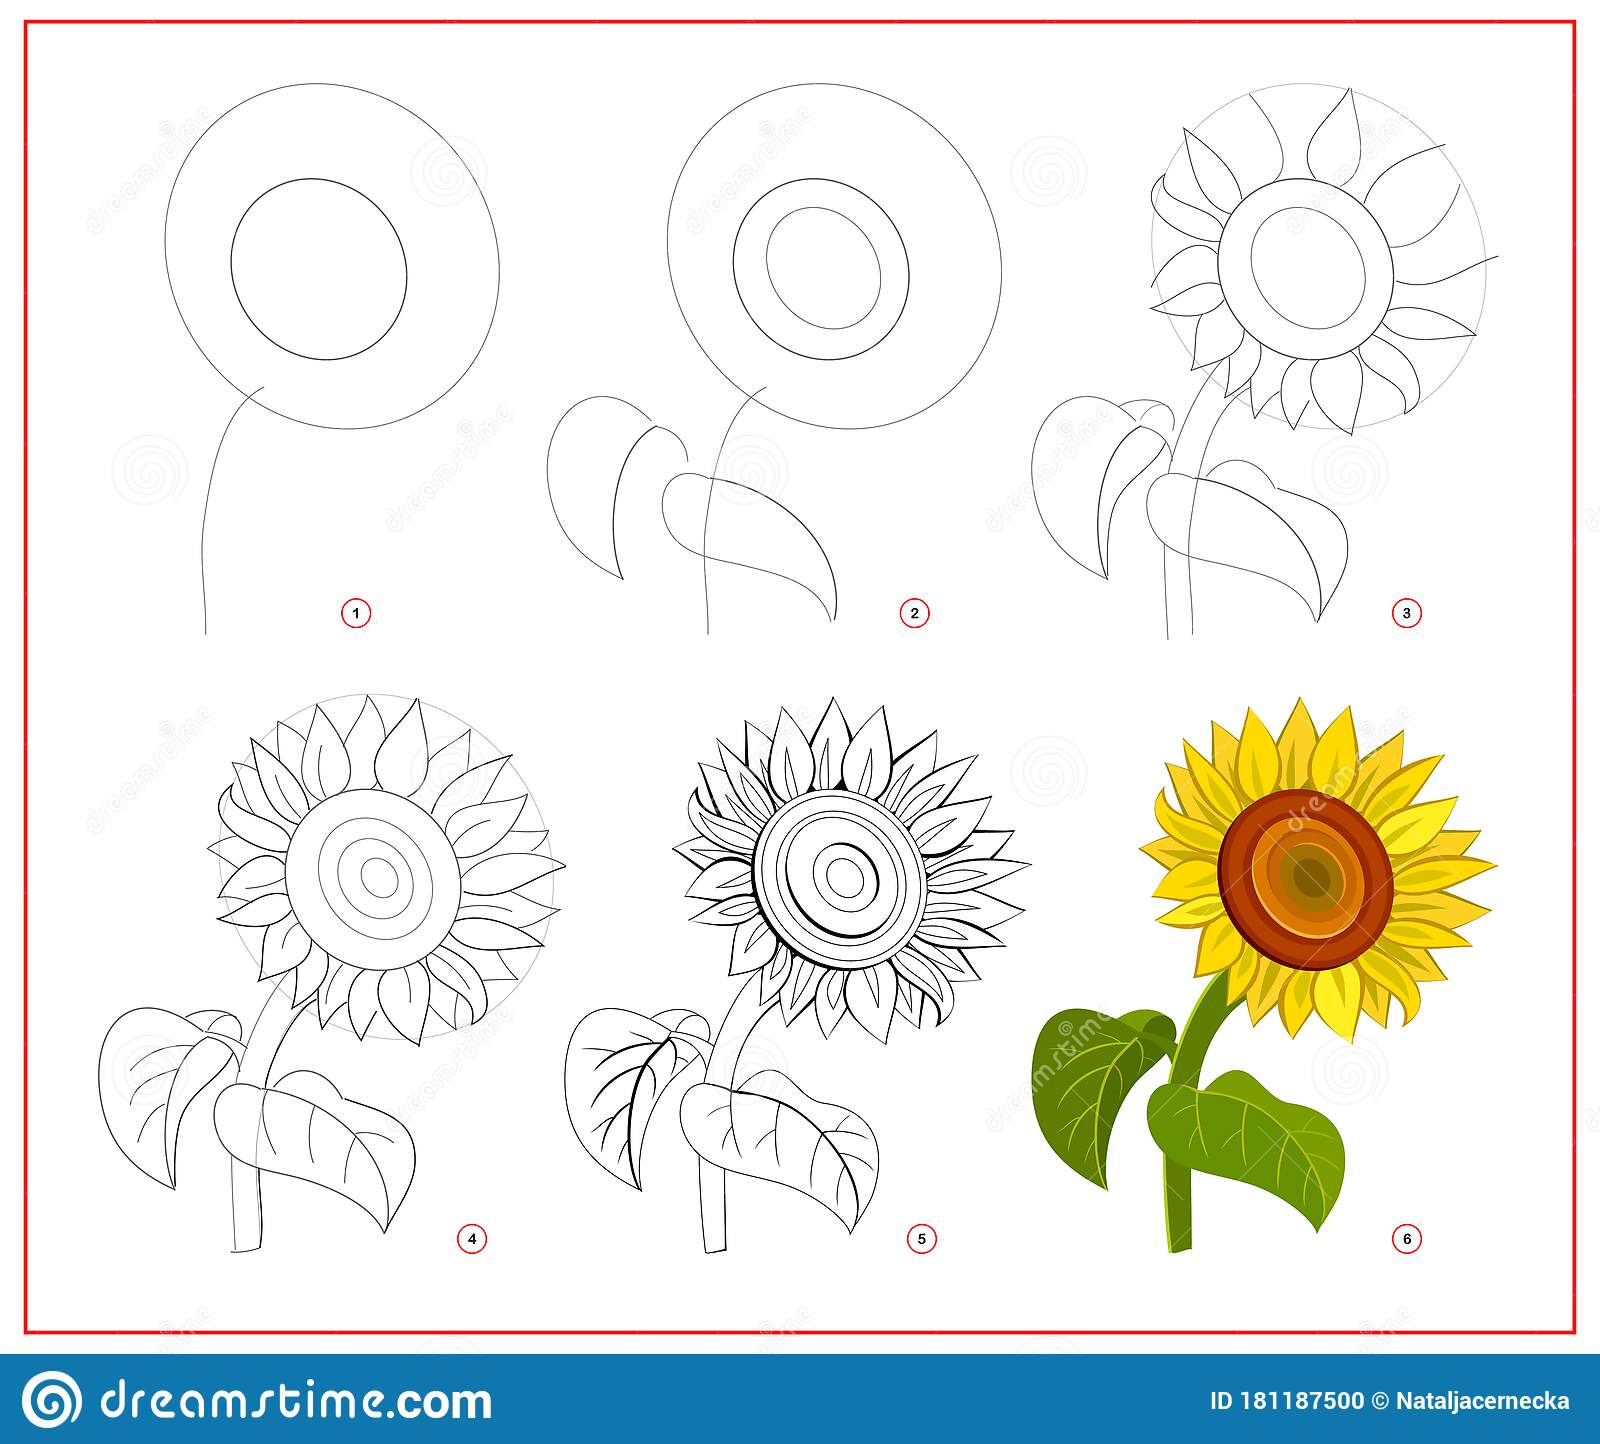 Sunflower Coloring Stock Illustrations 1 164 Sunflower Coloring Stock Illustrations Vectors Clipart Dreamstime